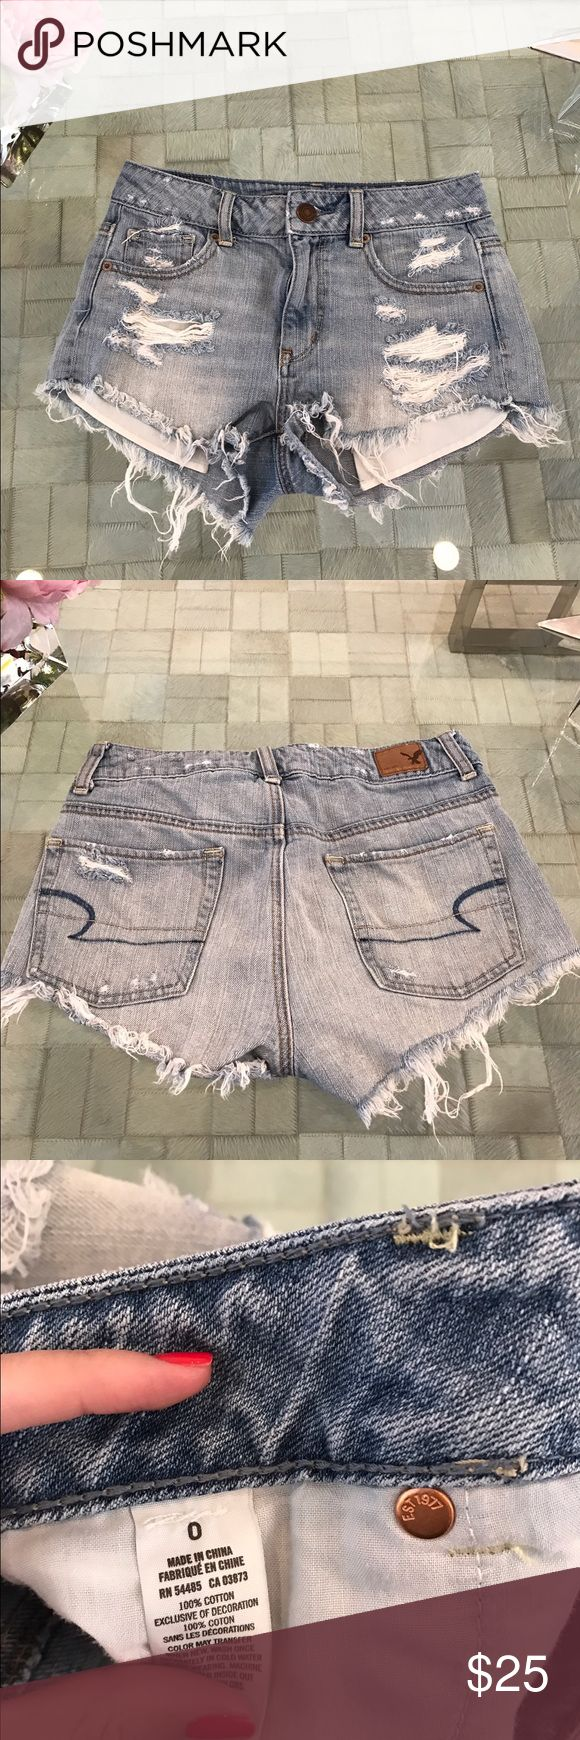 ONE DAY SALE! American Eagle Jean Shorts American Eagle Jean Shorts American Eagle Outfitters Shorts Jean Shorts